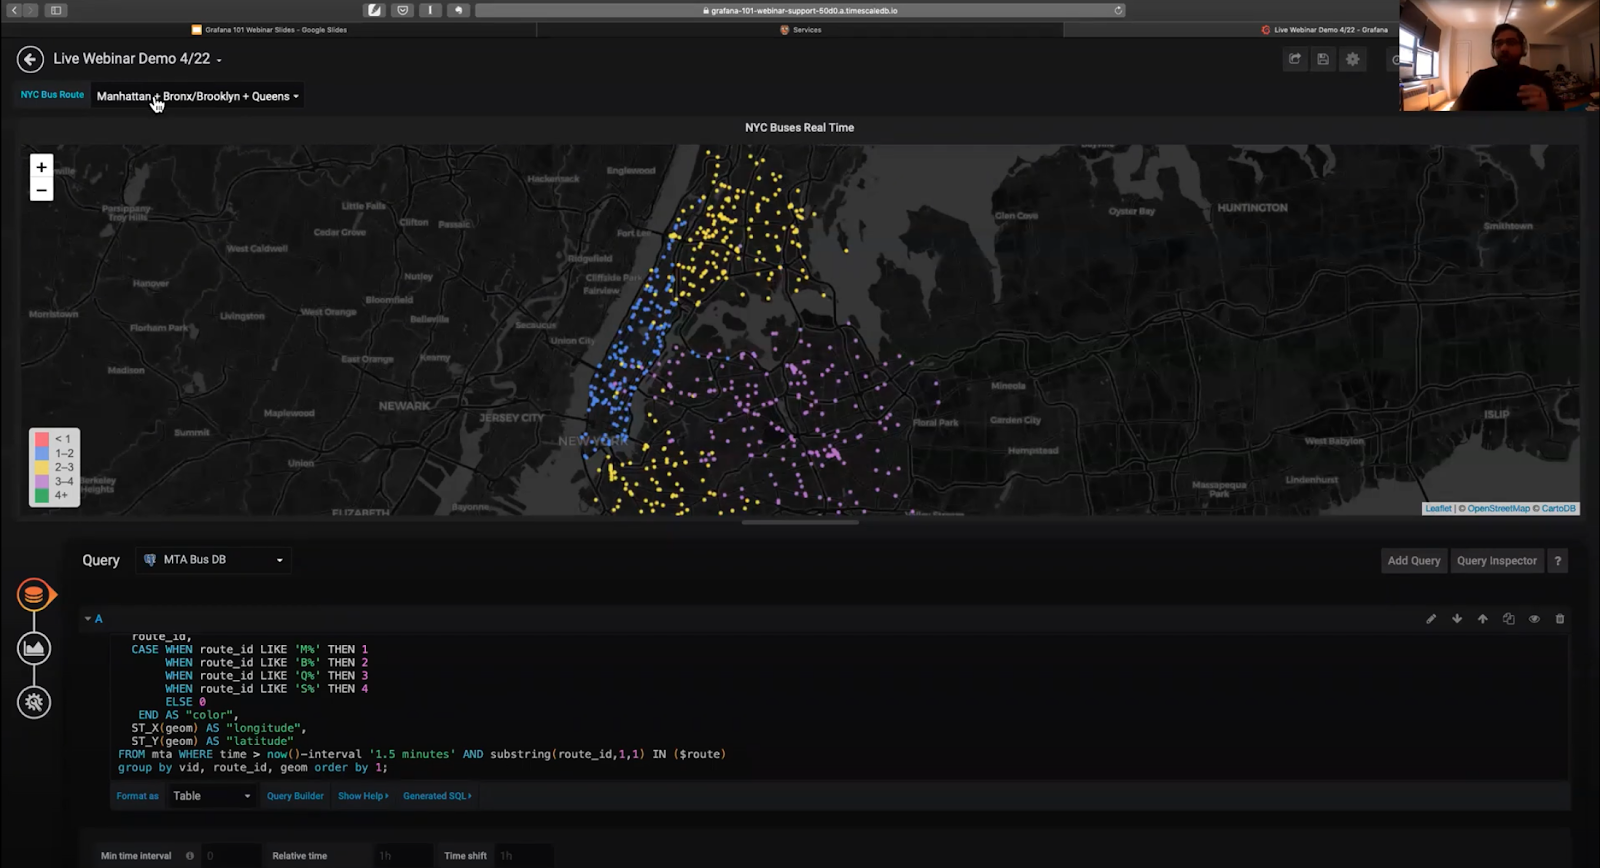 Grafana panel section showing the SQL query and Worldmap visual to monitor the real-time location of New York City buseses